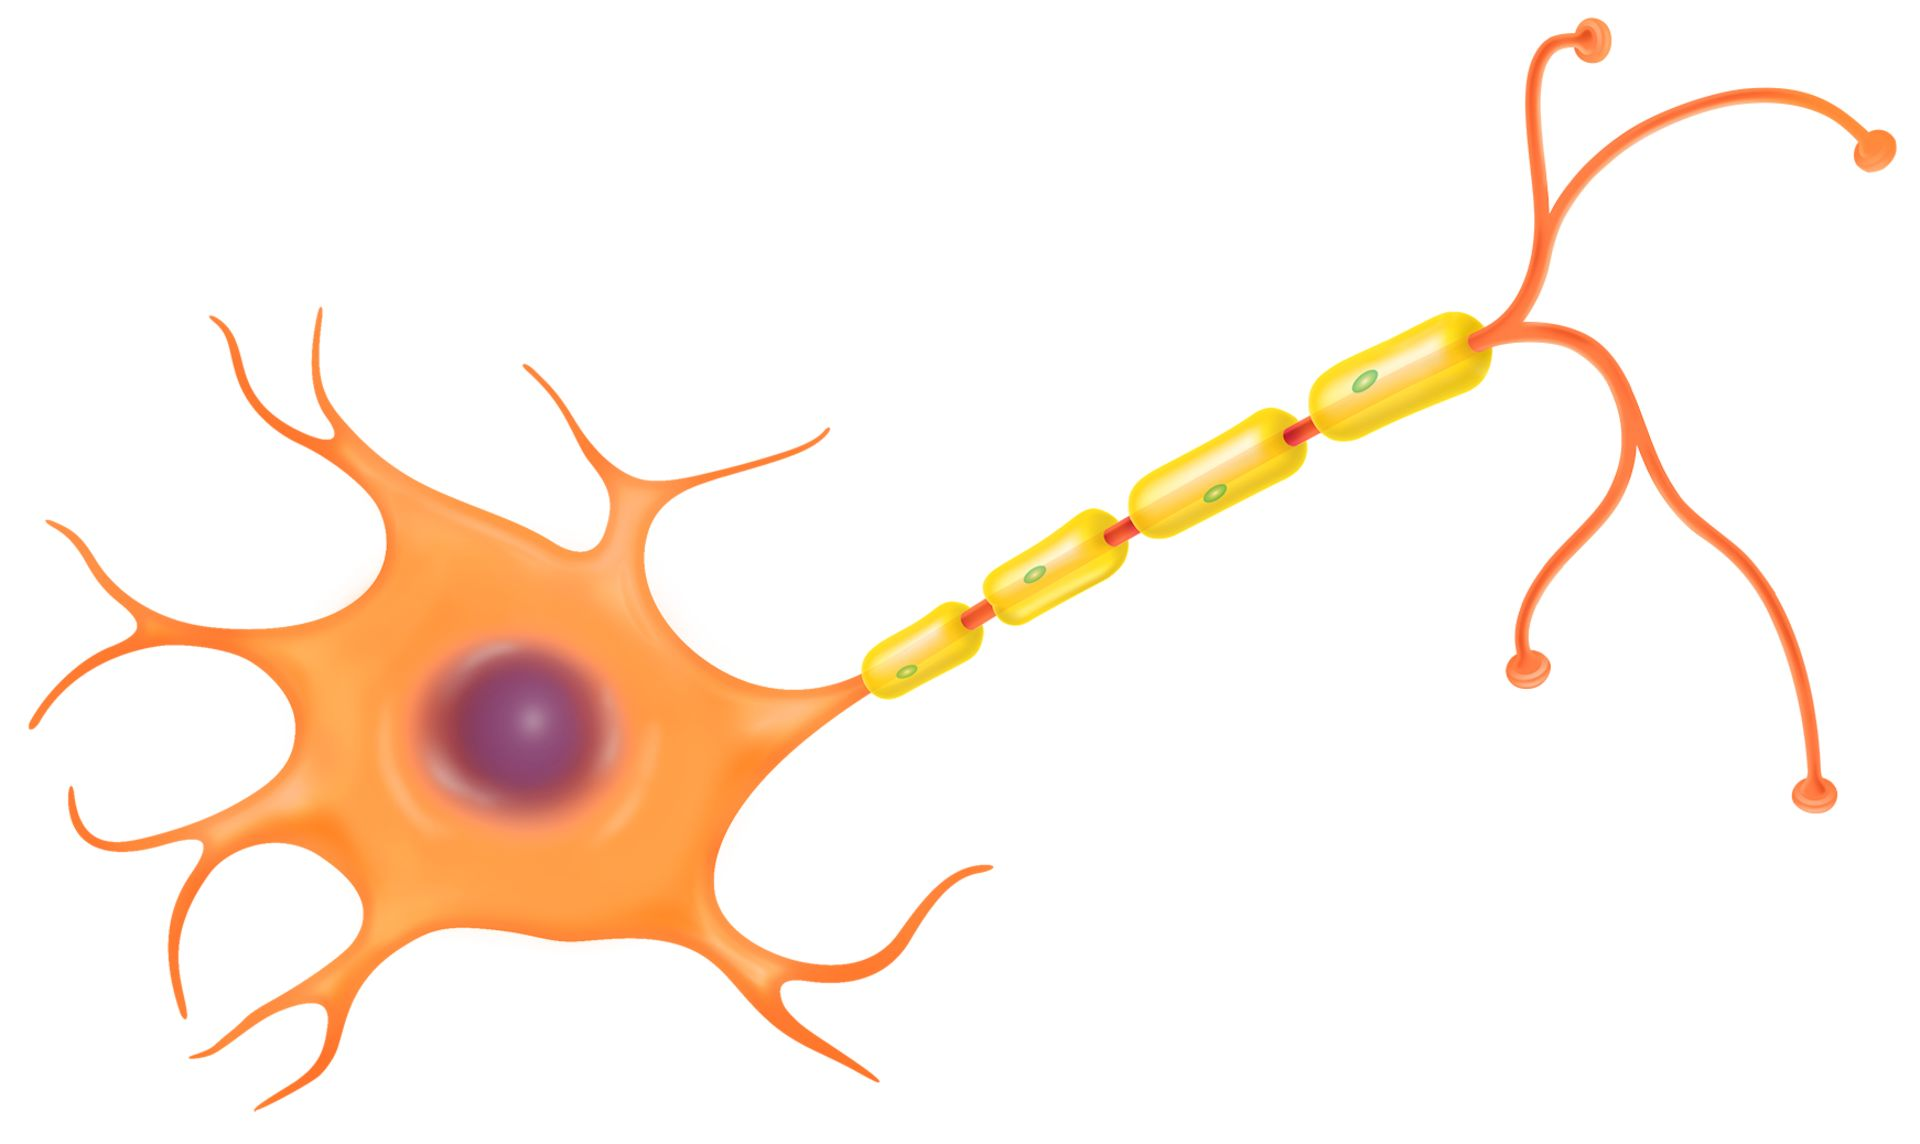 Brain cell clipart svg freeuse library Nerve Cell Function | Nerve Cell Diagram | DK Find Out svg freeuse library